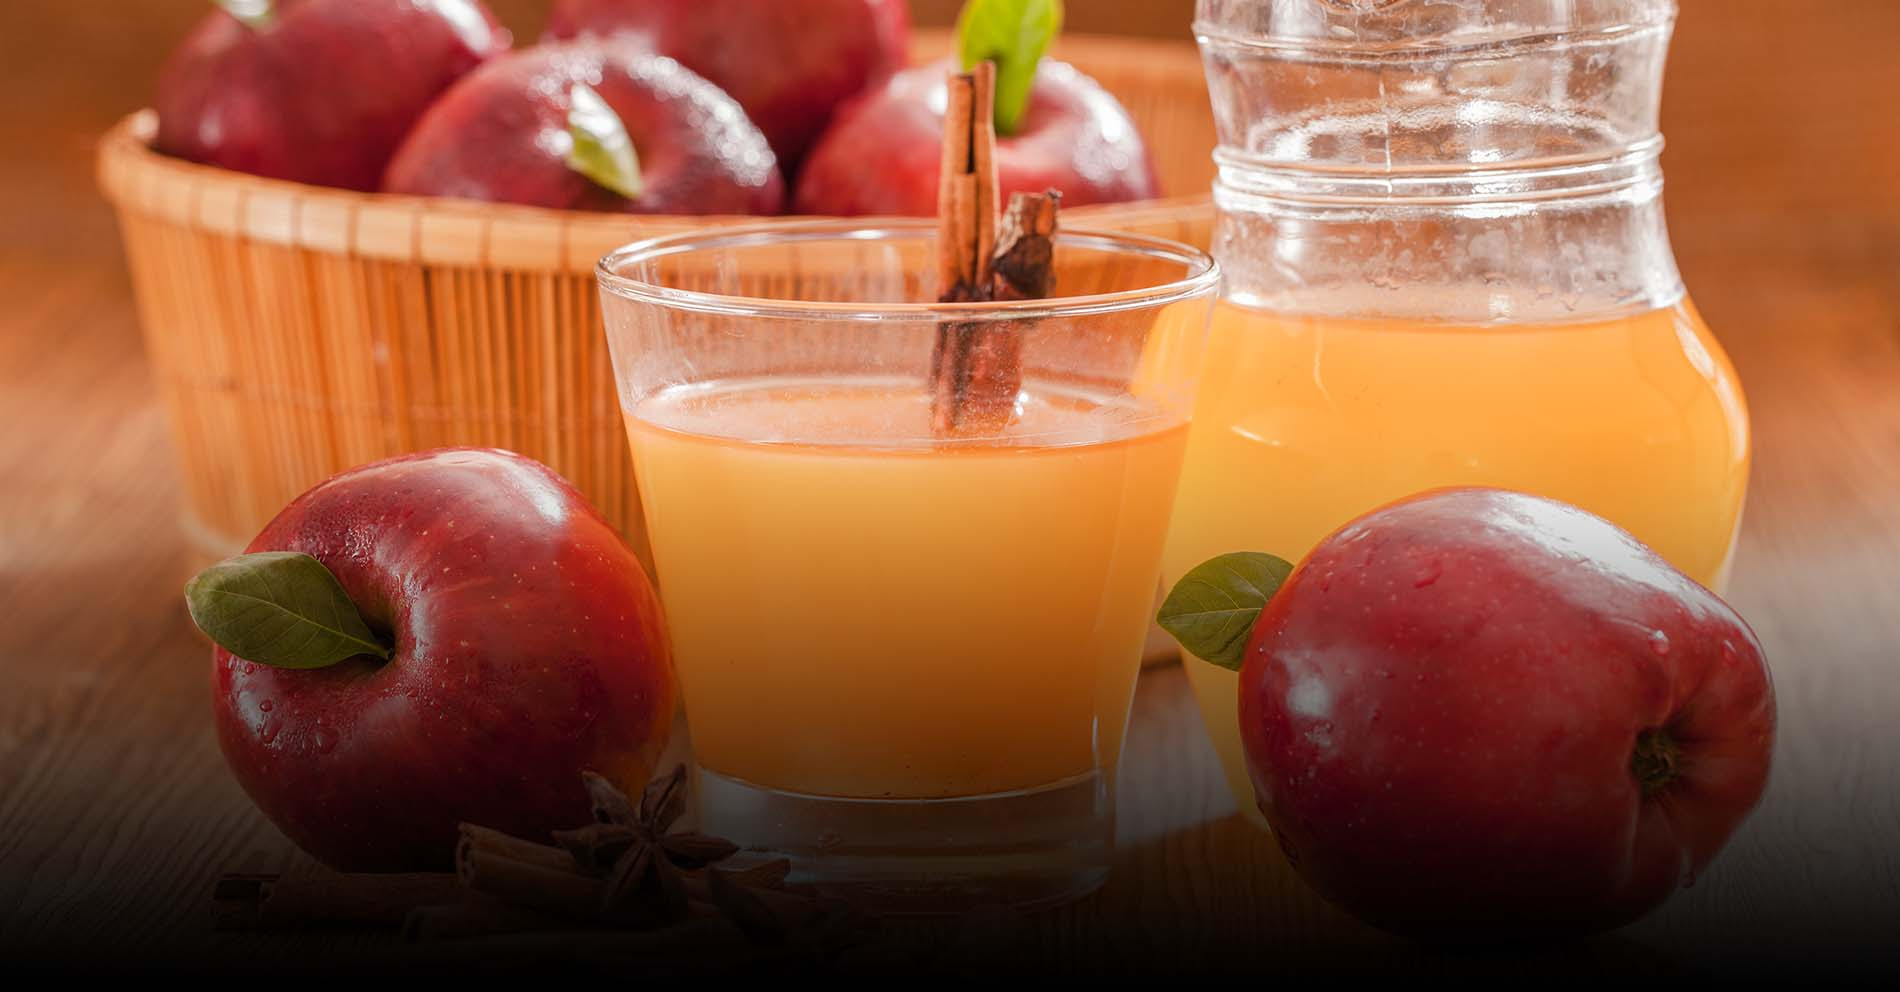 Health Benefits of Apple Cider Vinegar: 10 Products to Choose From